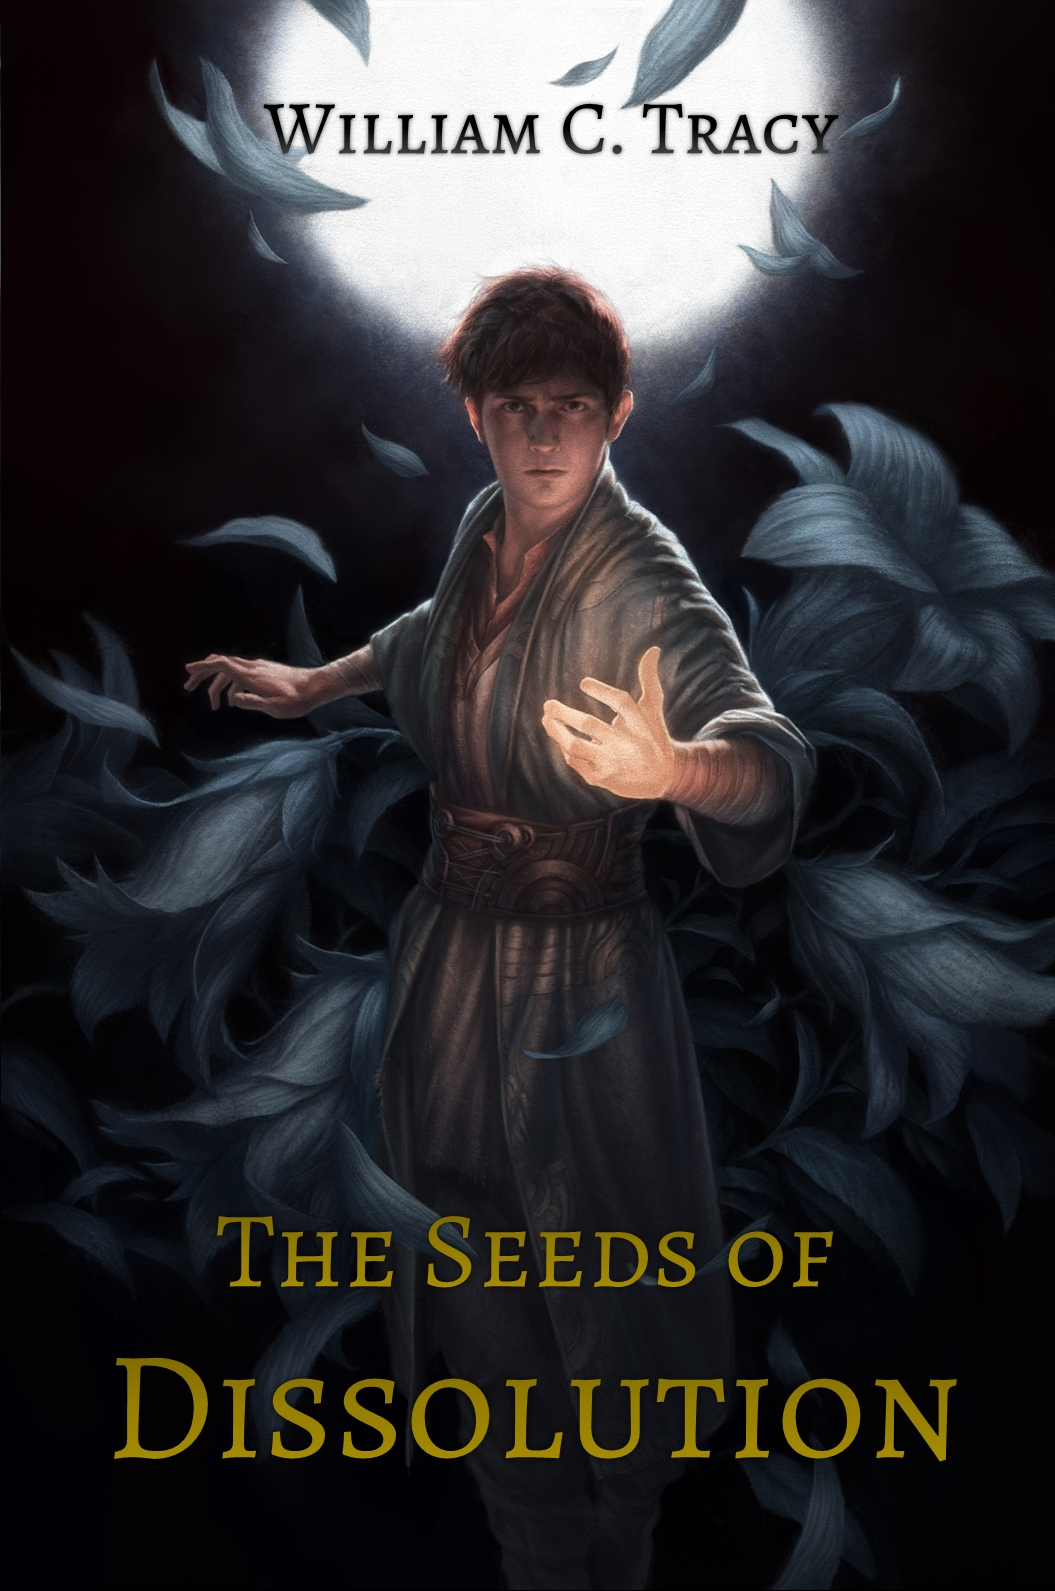 The Seeds of Dissolution cover image